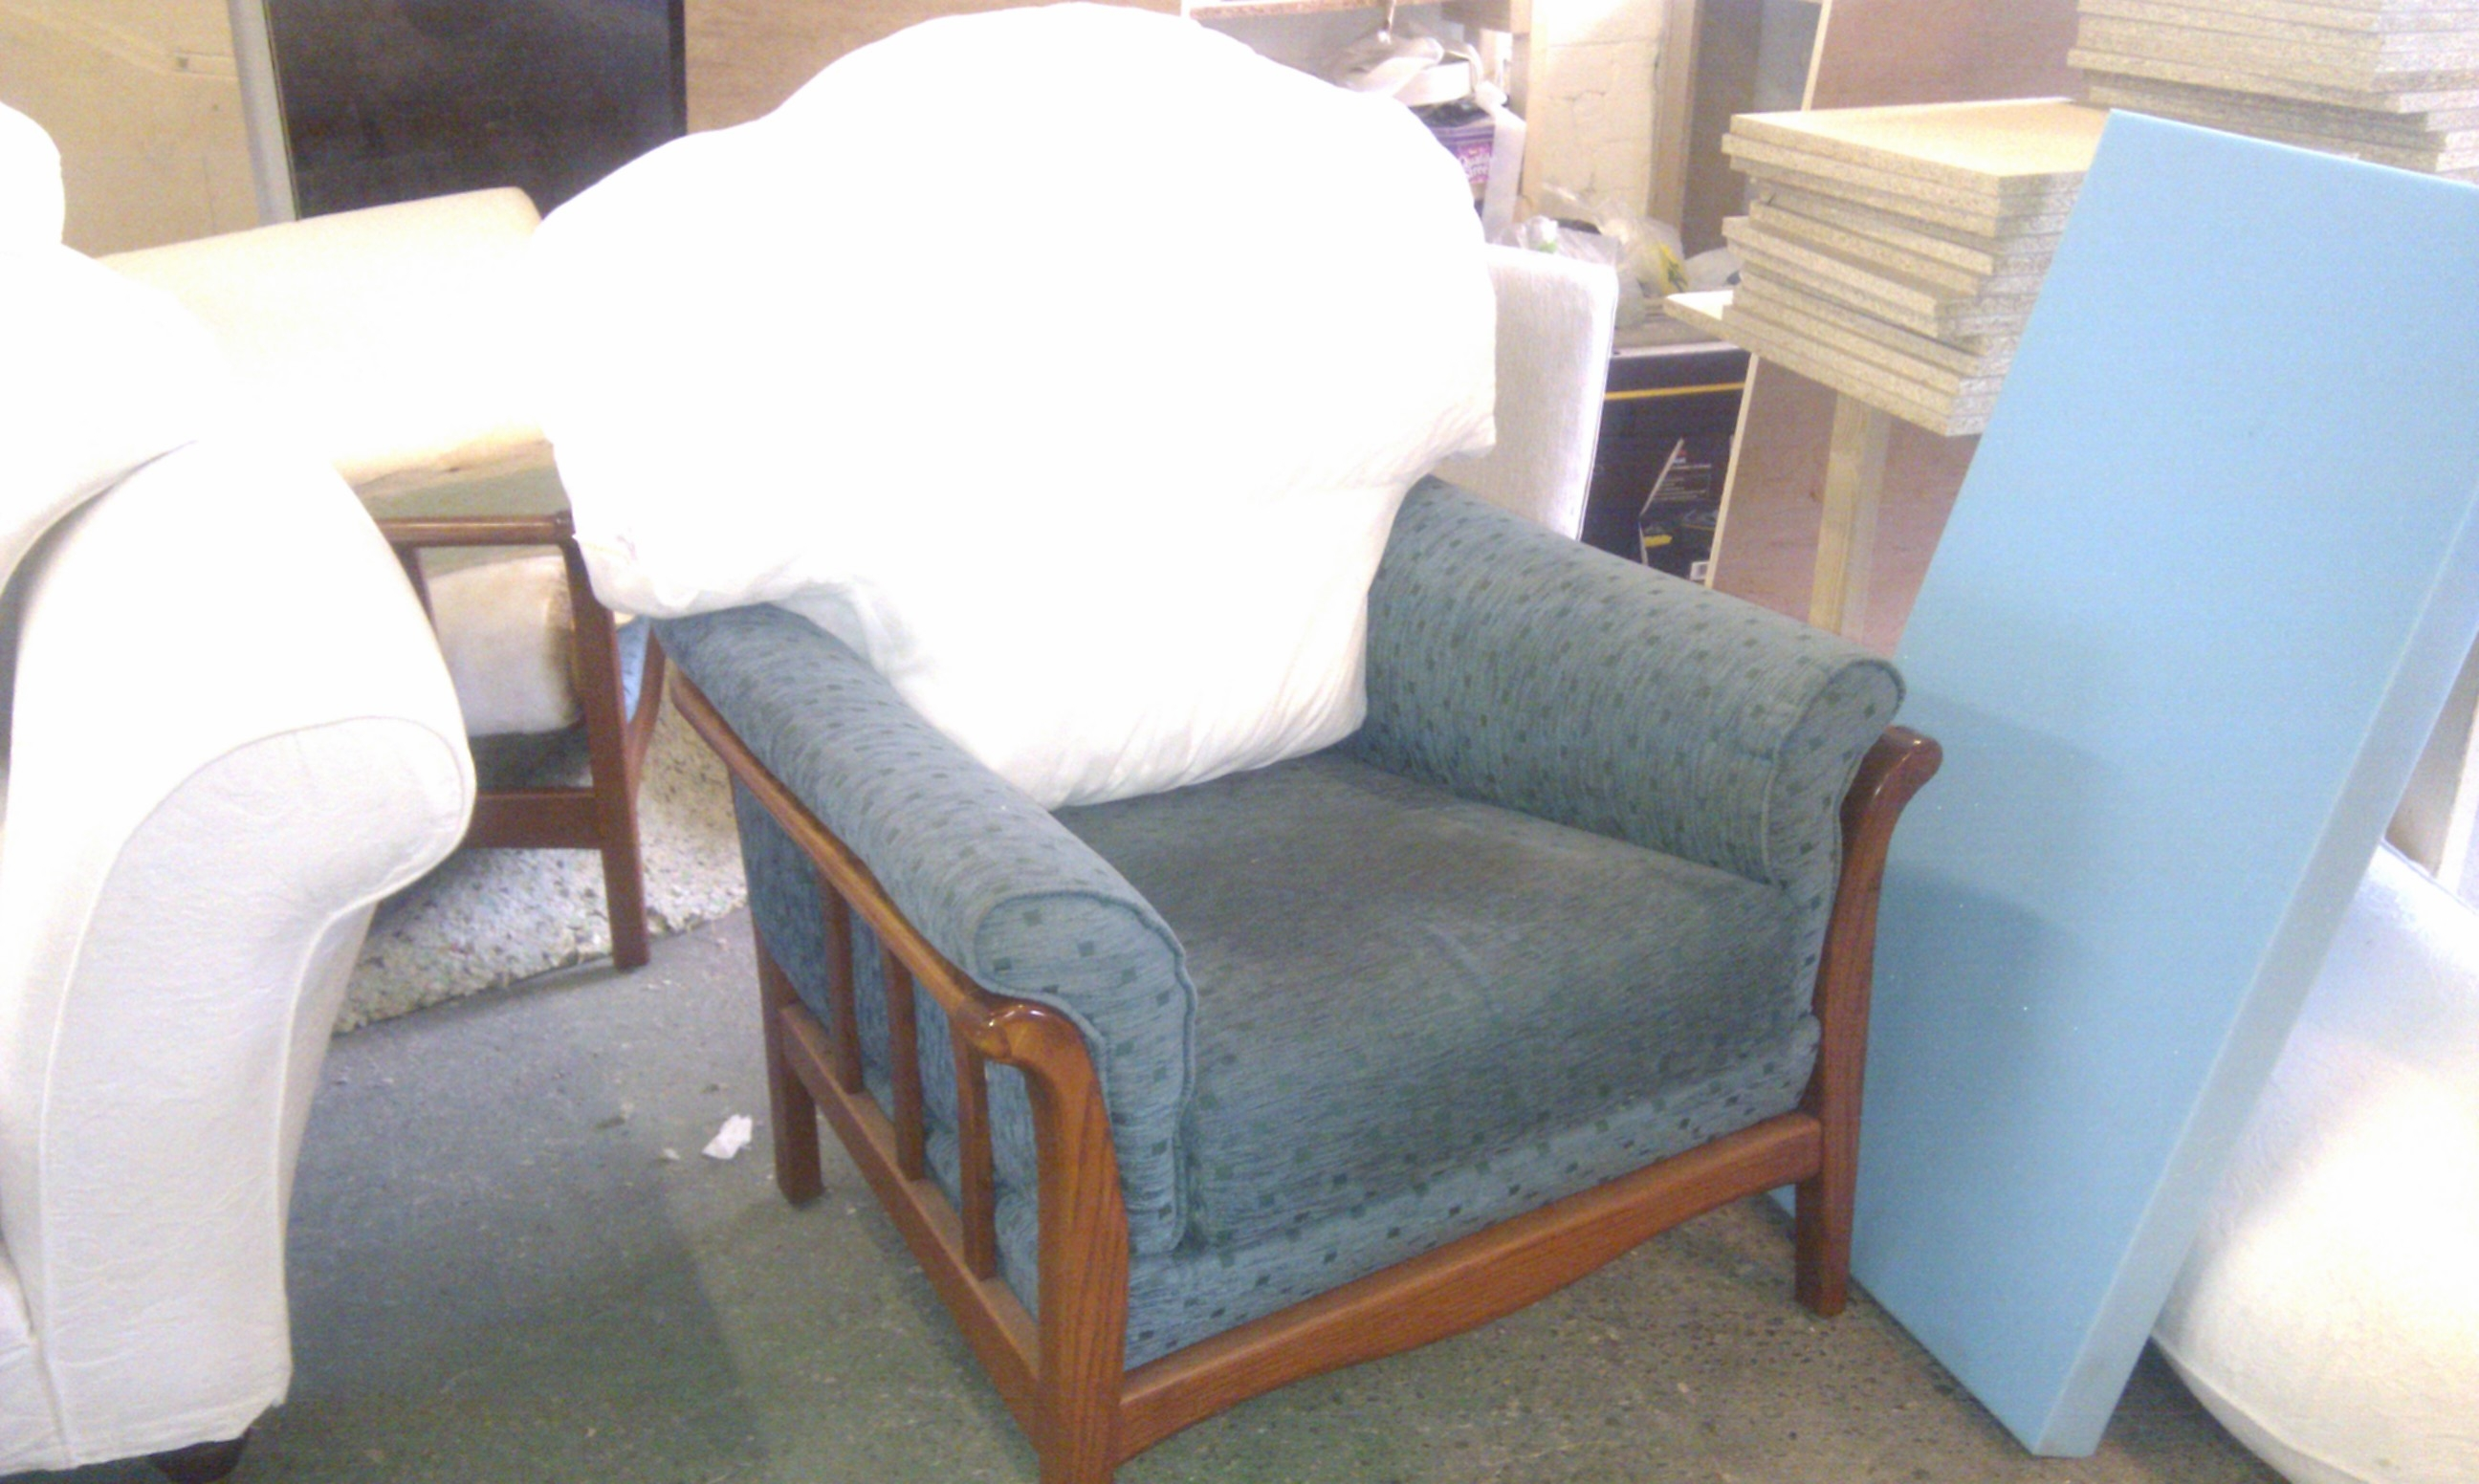 Impressive Widely Used Cintique Chair Covers For Cintique Arm Chairs And Sofa Abbey Upholstery And French (Image 9 of 15)